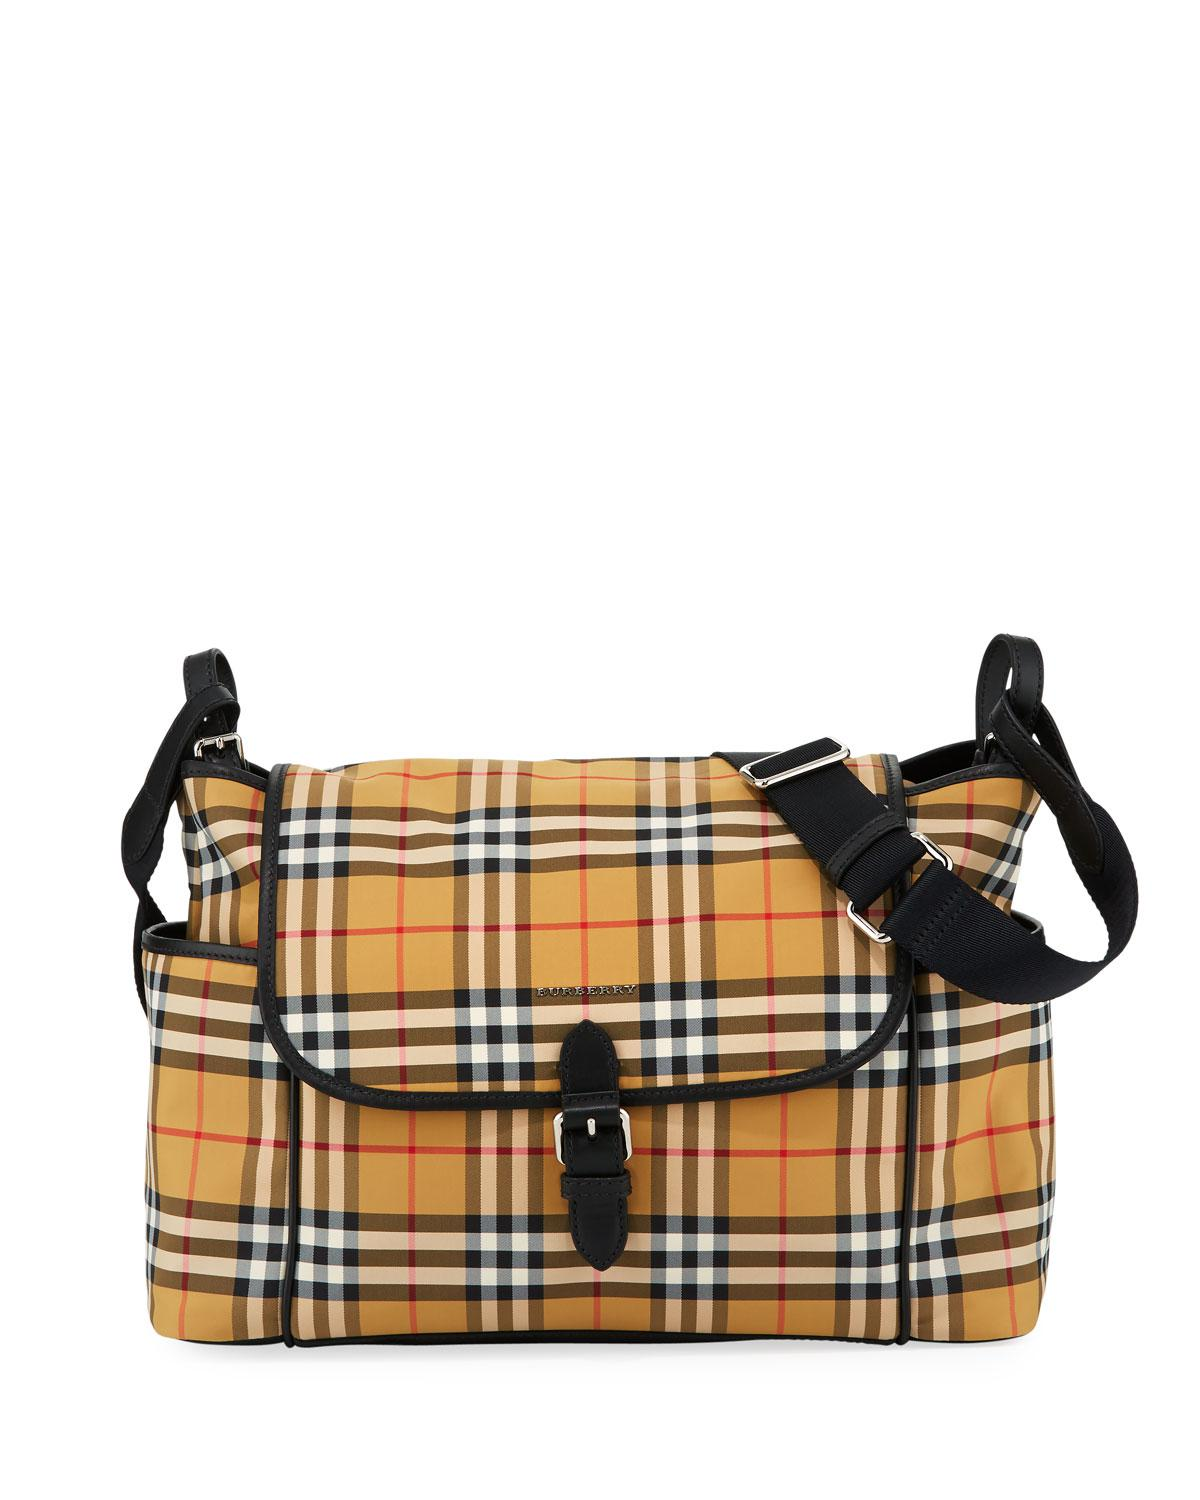 bf264df62238 Burberry Flap-top Check Canvas Diaper Bag in Natural - Lyst